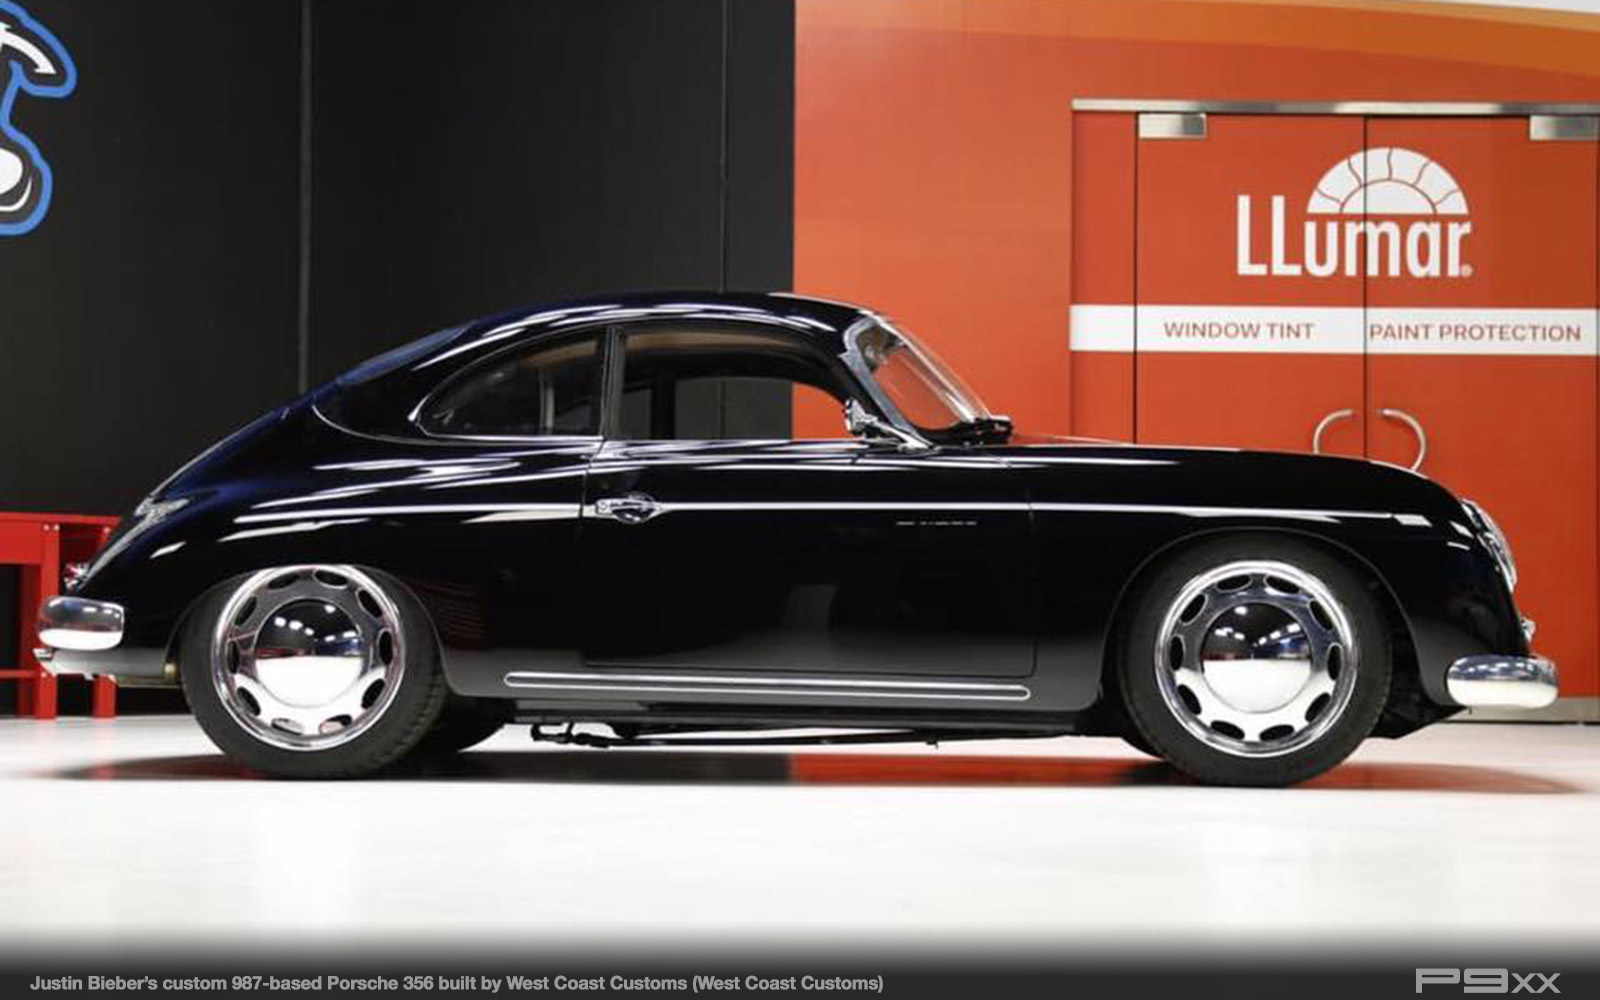 West Coast Customs Builds 356 Body 987 2 Likely For Justin